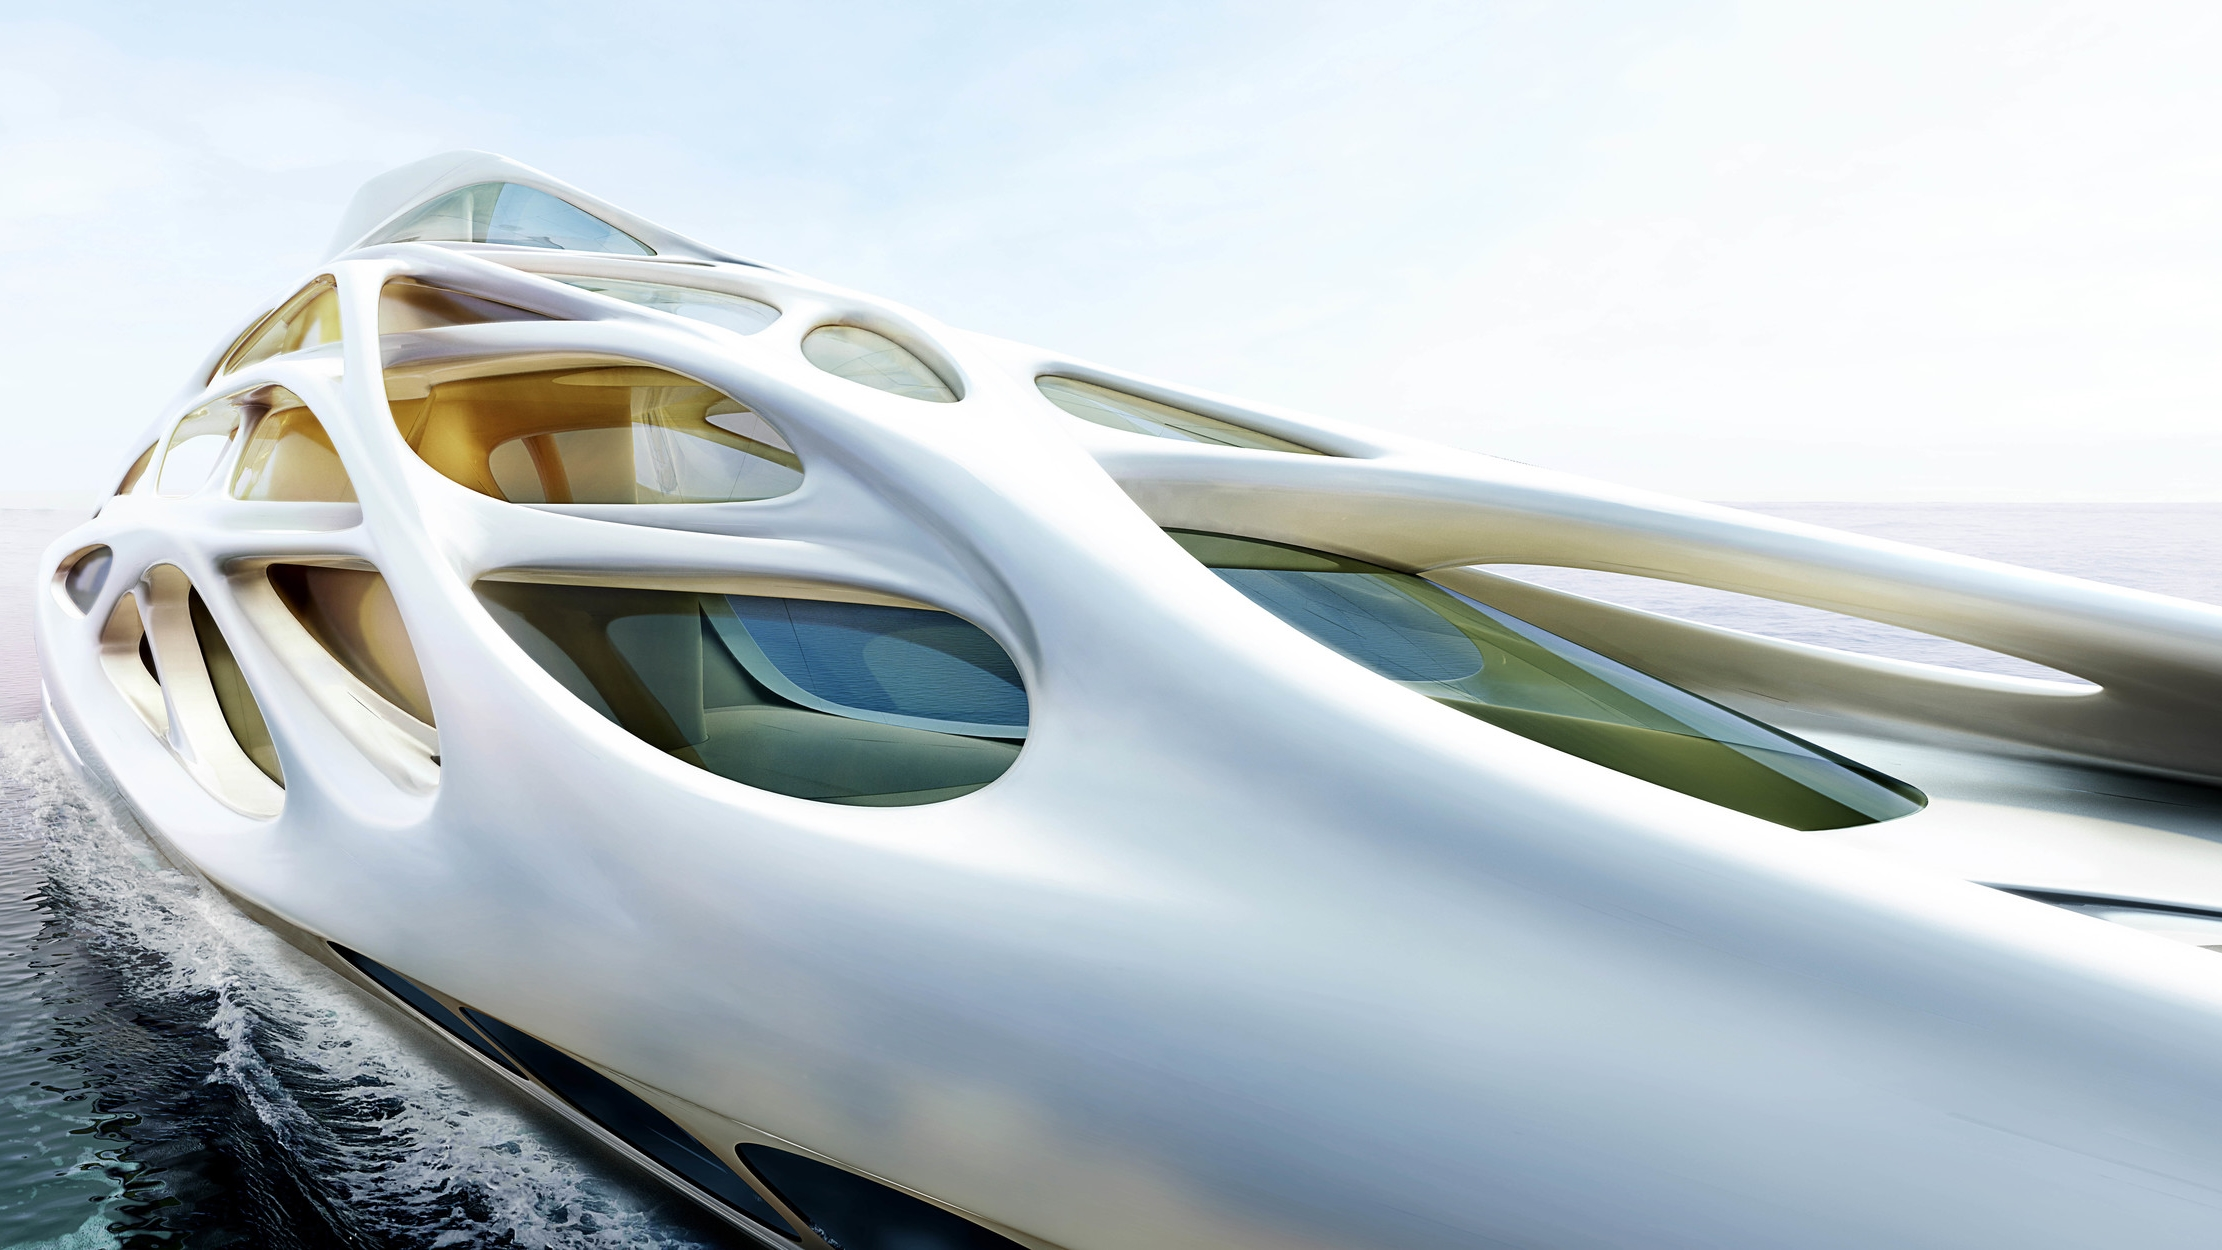 Superyacht for Blohm and Voss   |   Zaha Hadid Architects